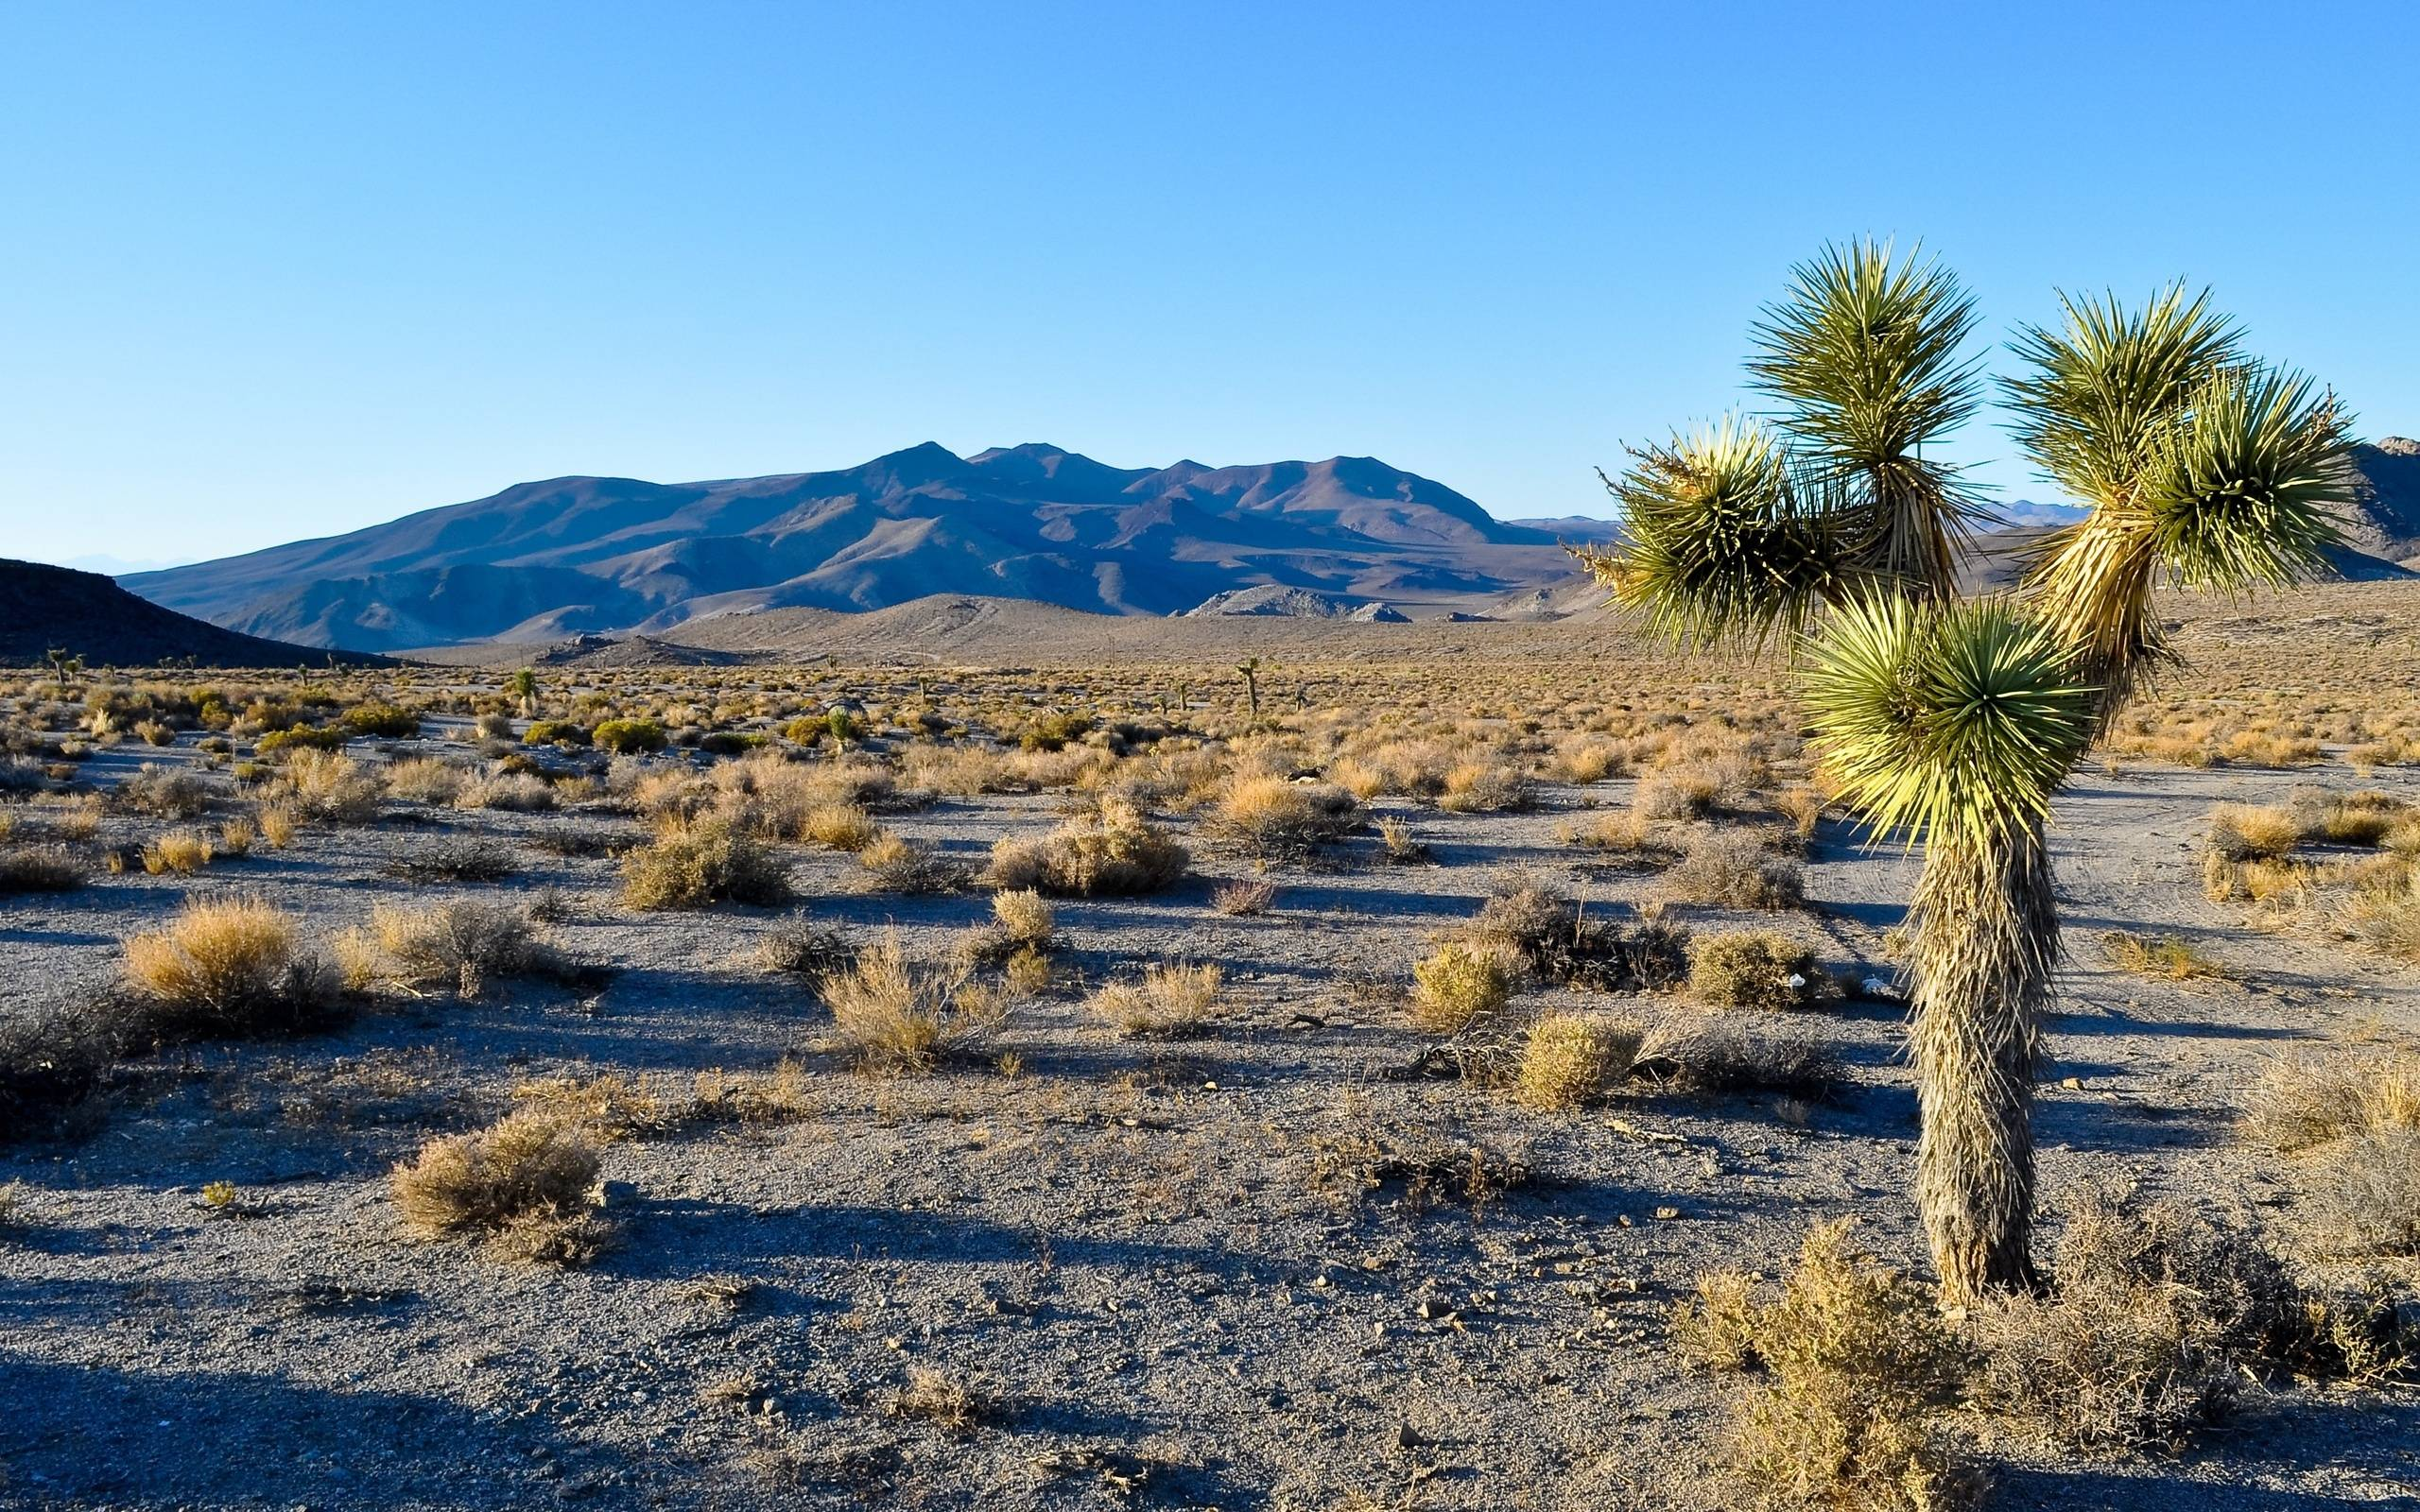 mojave desert scenery wallpaper - photo #27